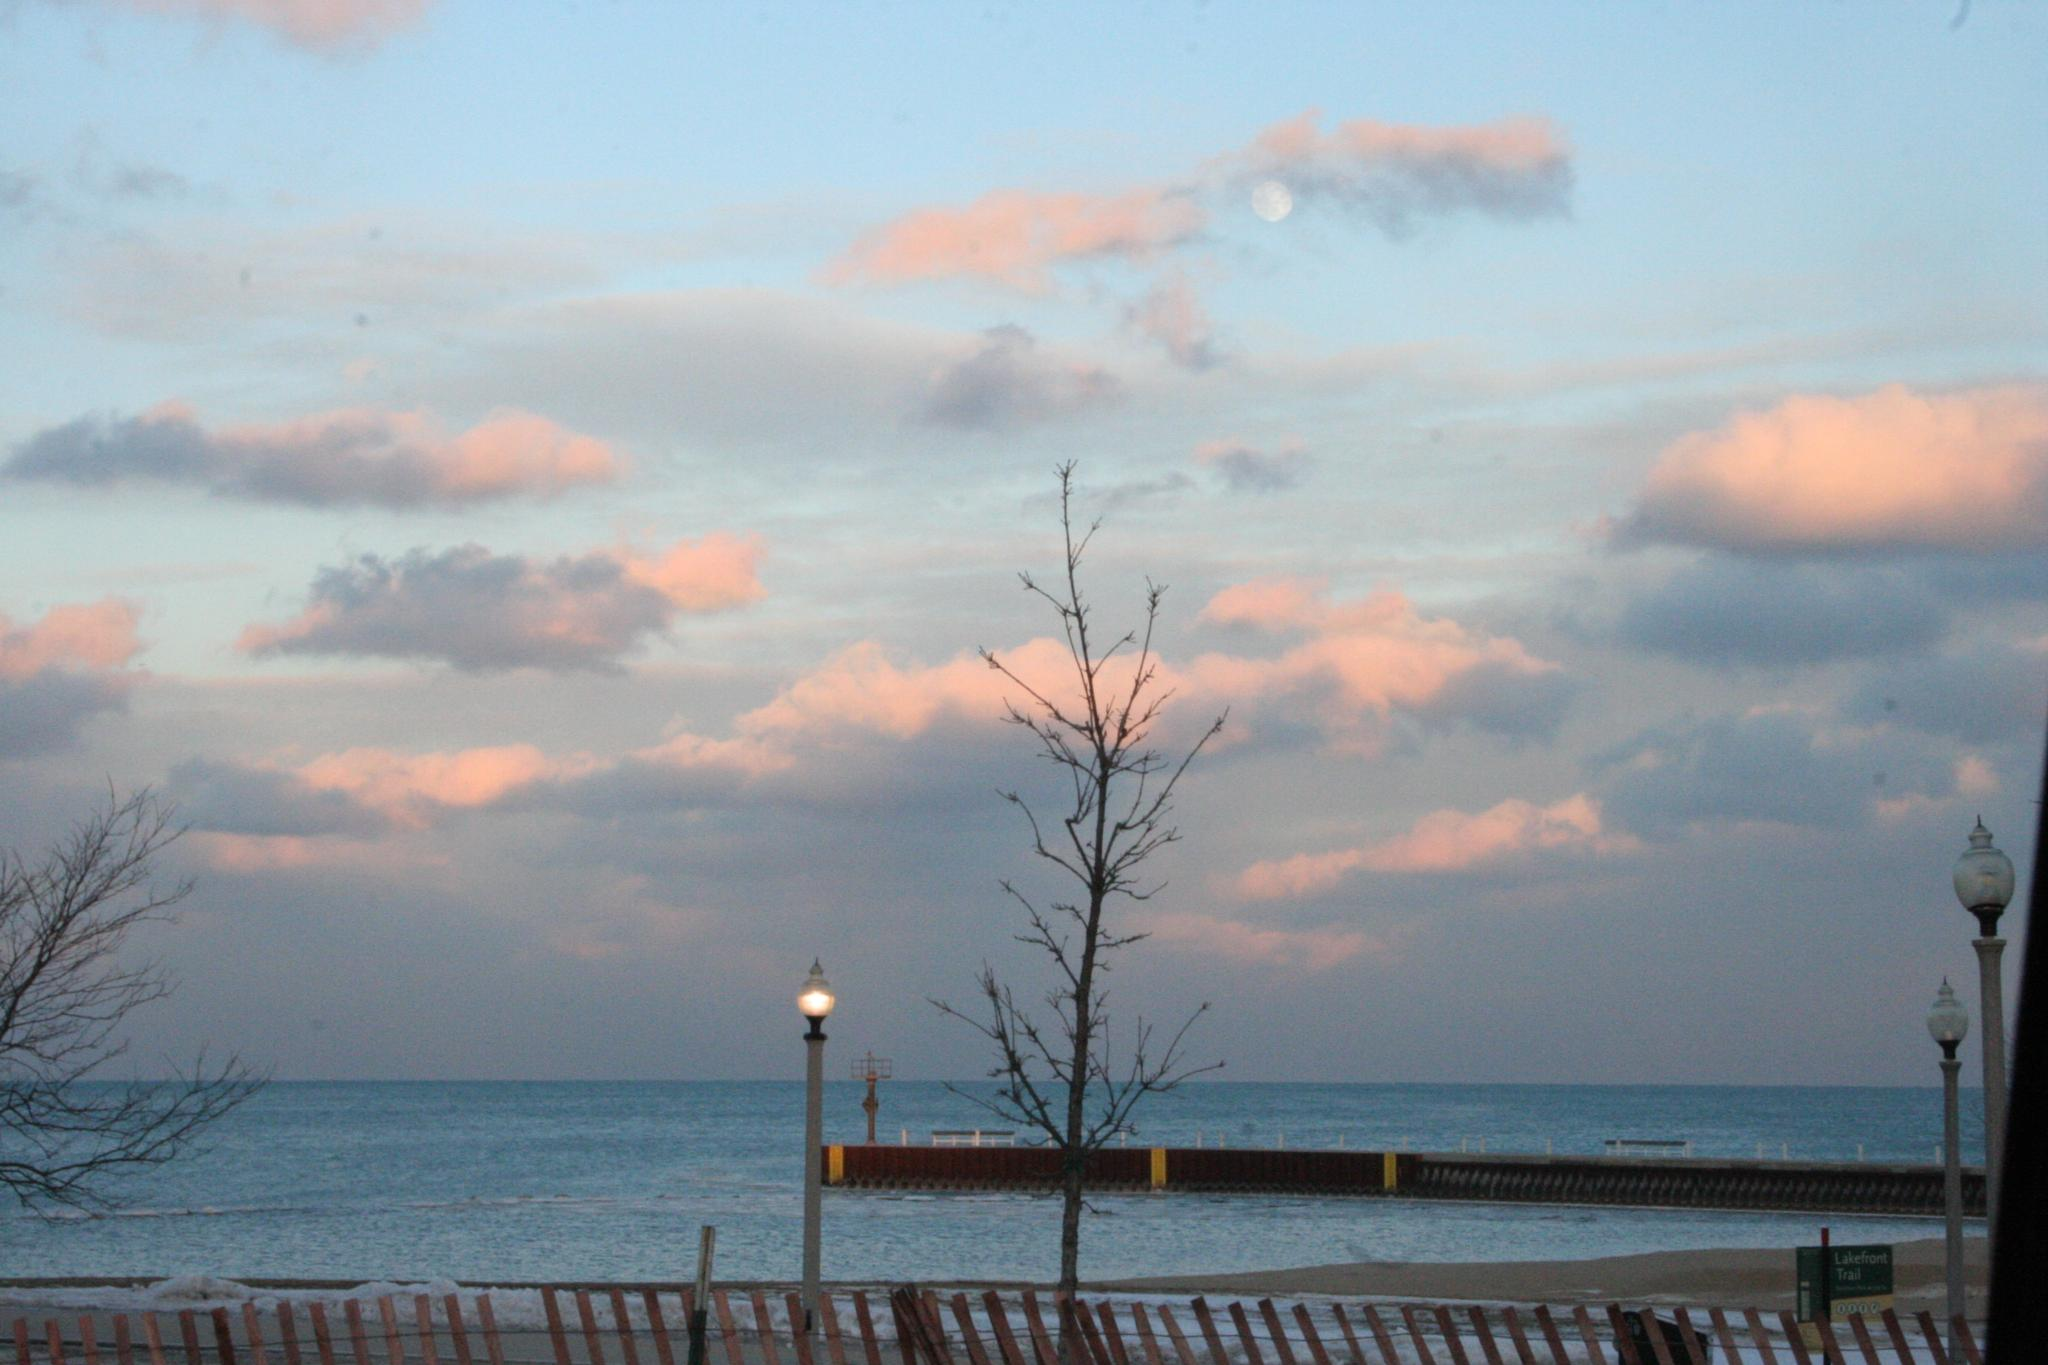 Lakefront trail by sportscop